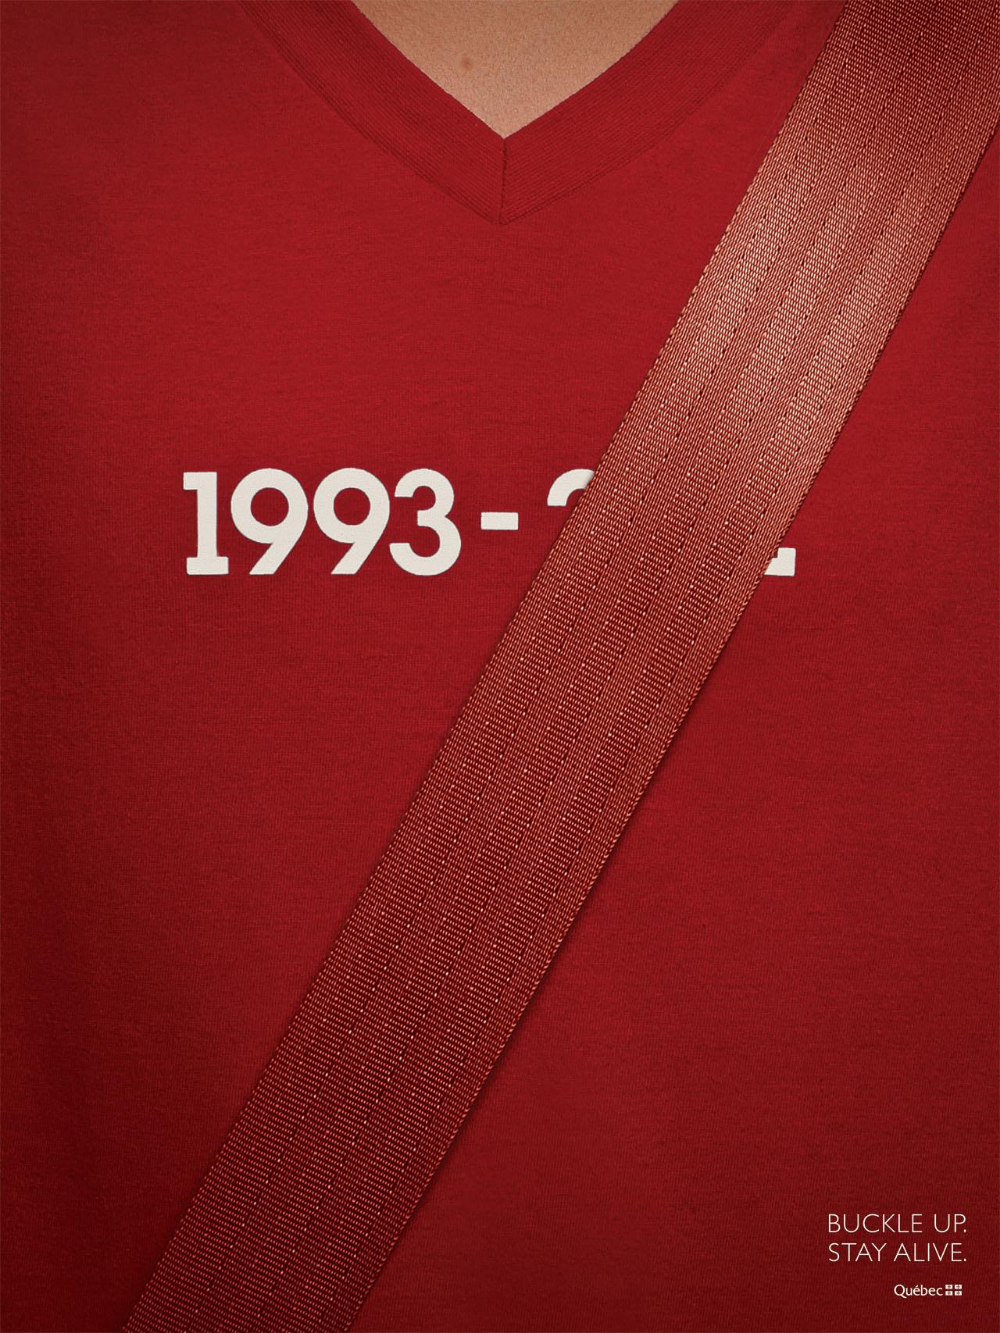 Quebec Automobile Insurance Society Print Advert By Lg2 Seatbelts